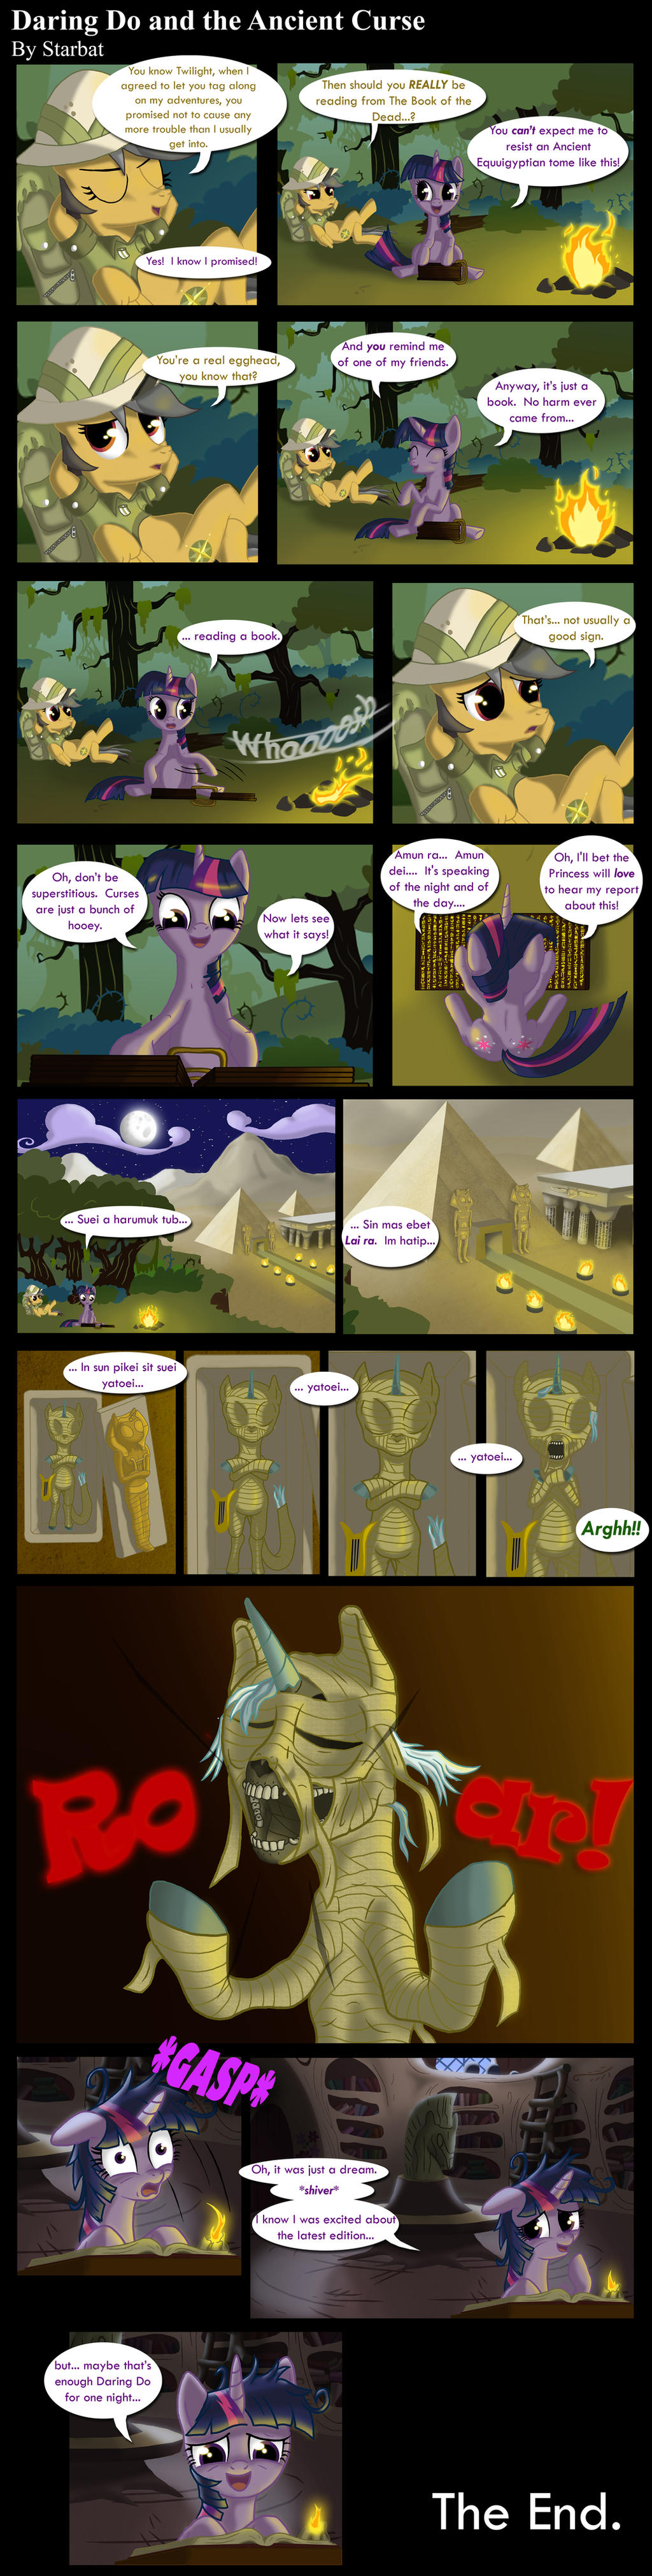 Daring Do and the Ancient Curse